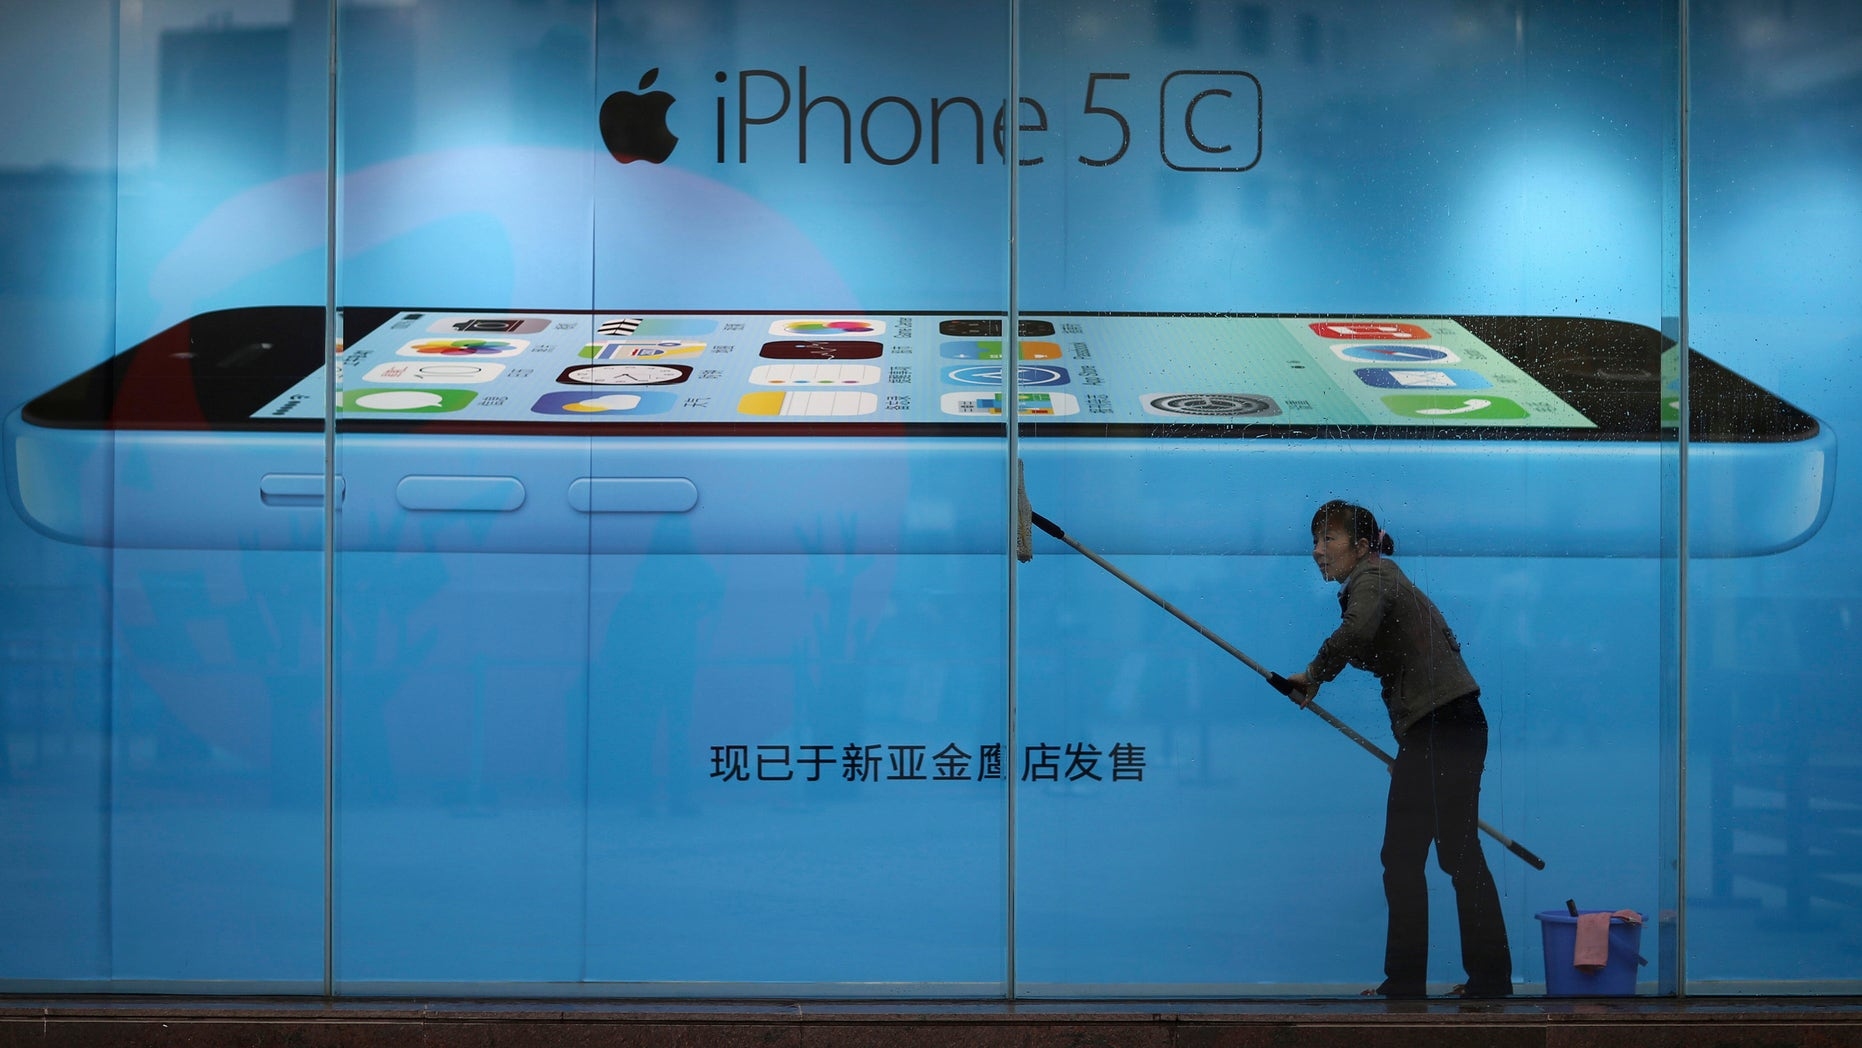 A worker cleans glass in front of an iPhone 5C advertisement at an apple store in Kunming, Yunnan province, in this October 27, 2013 file picture.